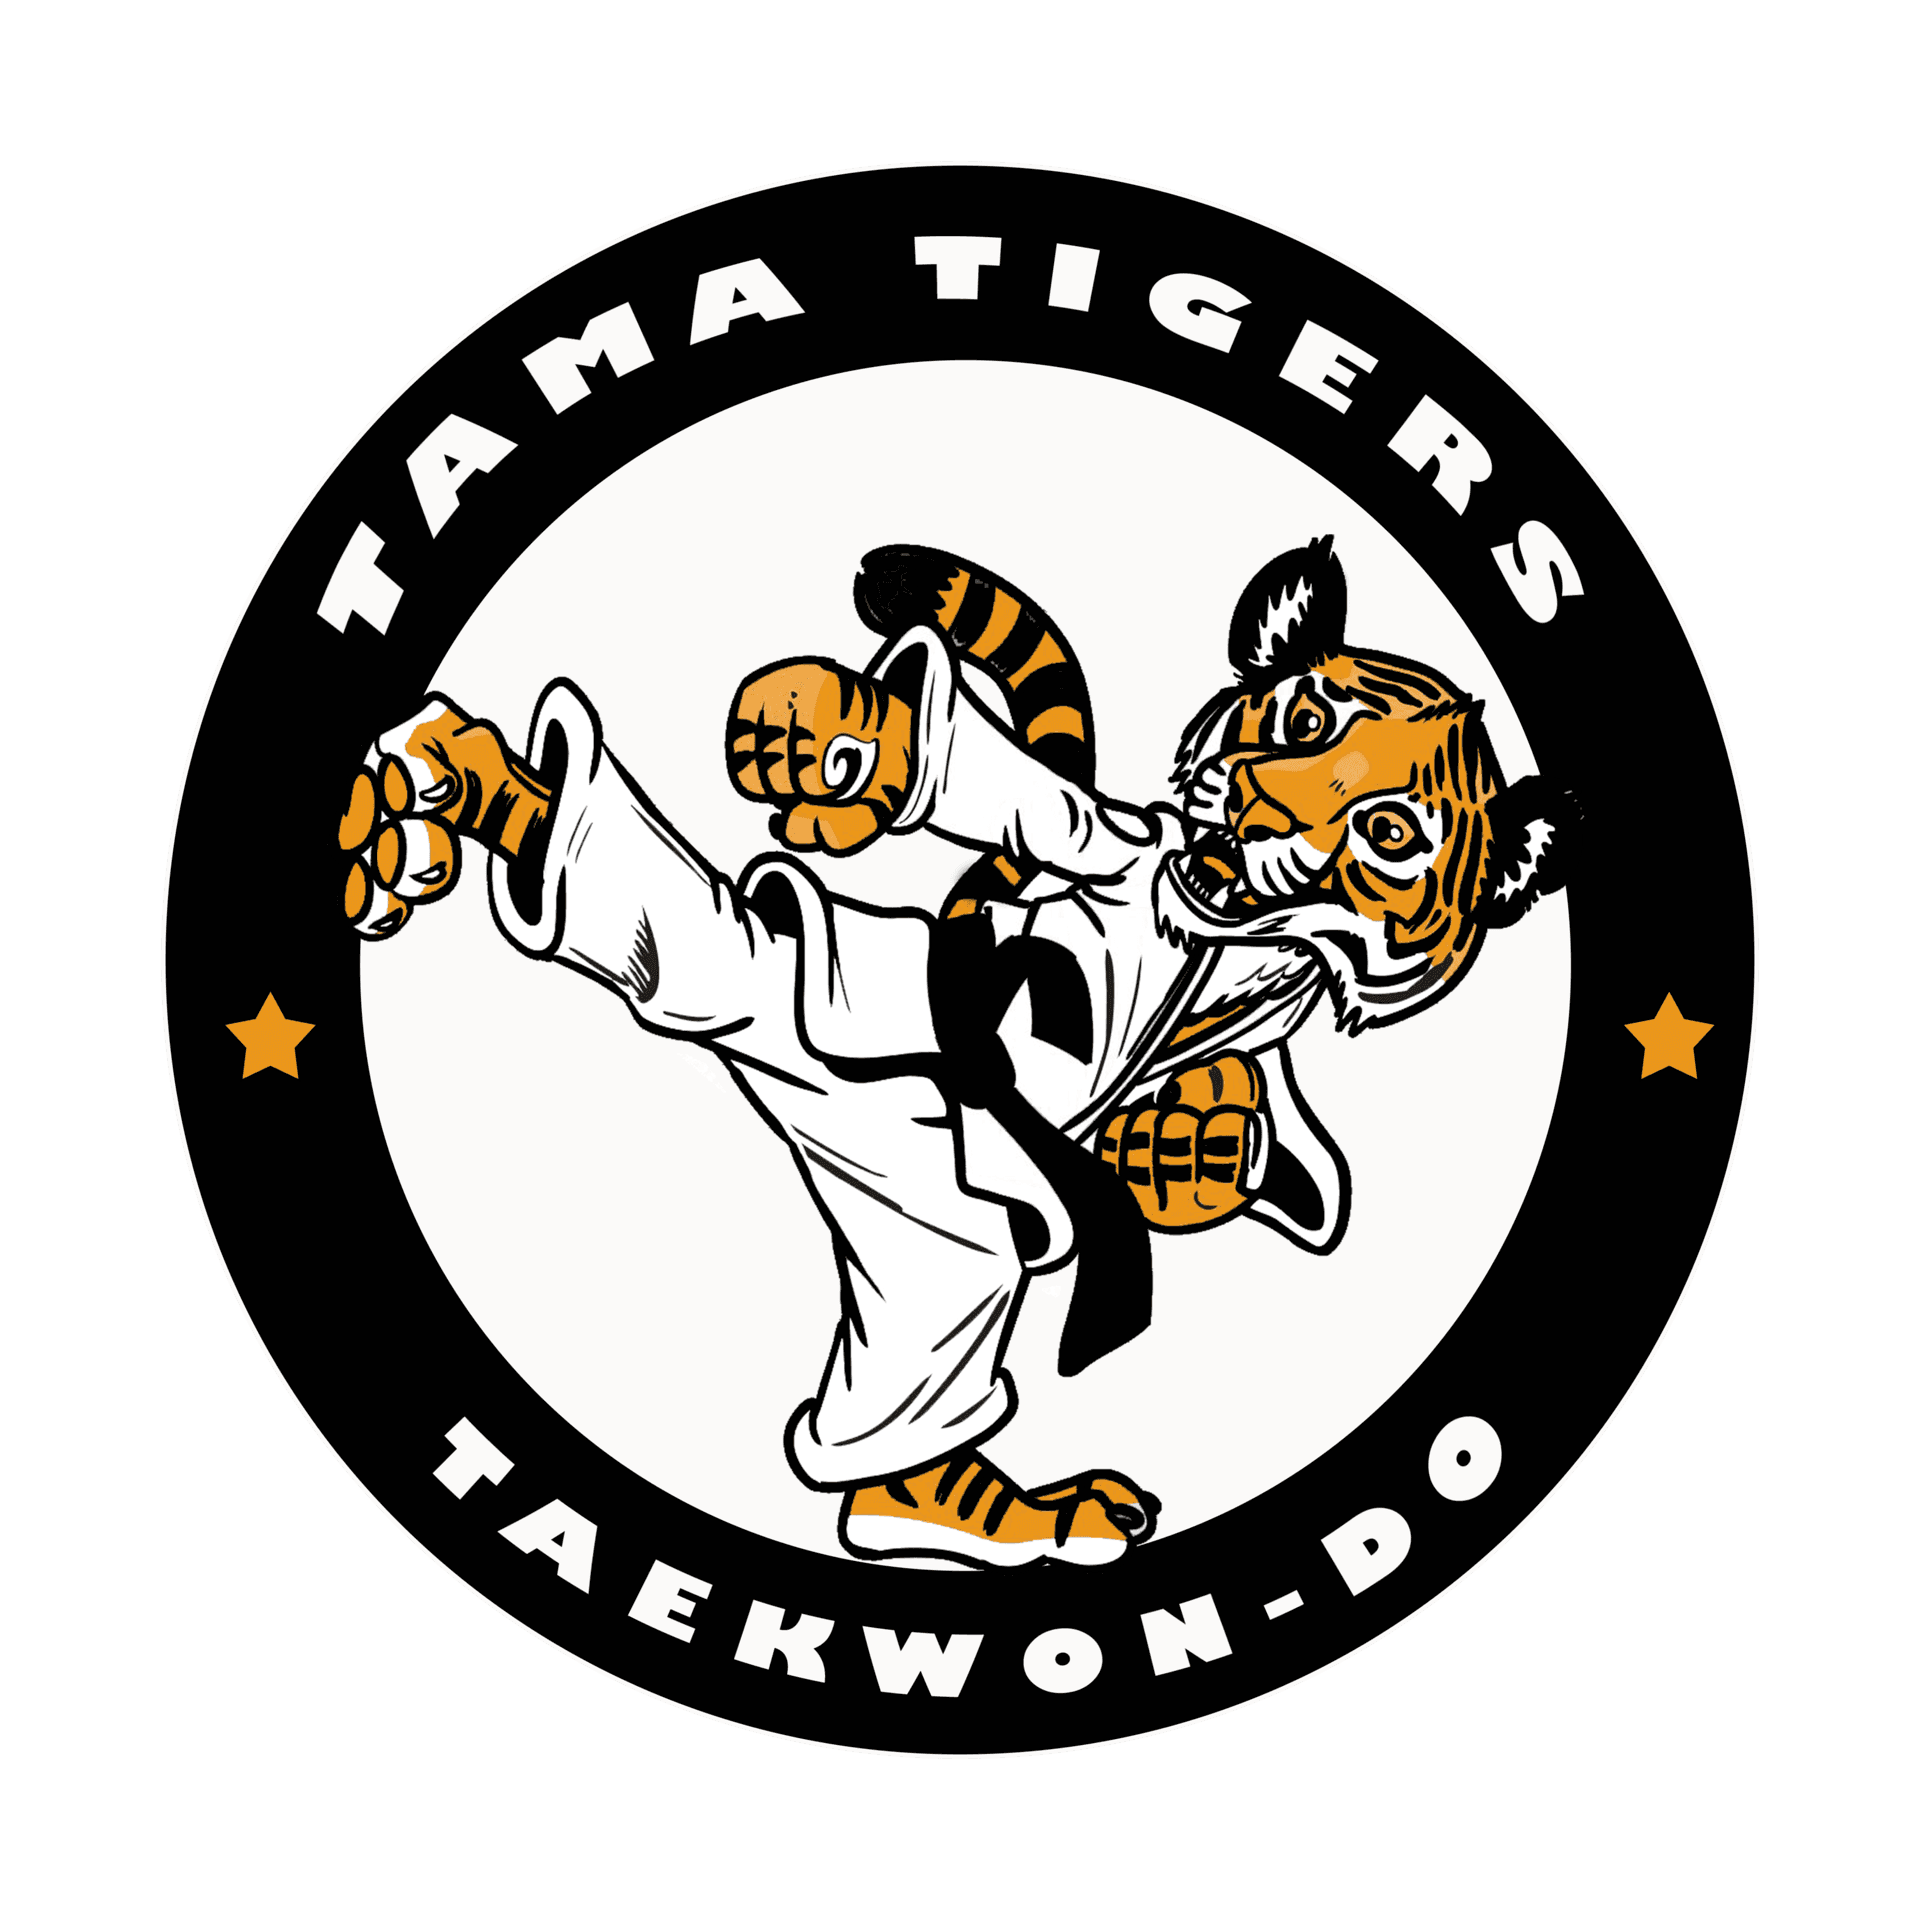 TAMA Tigers Taekwon-do Logo